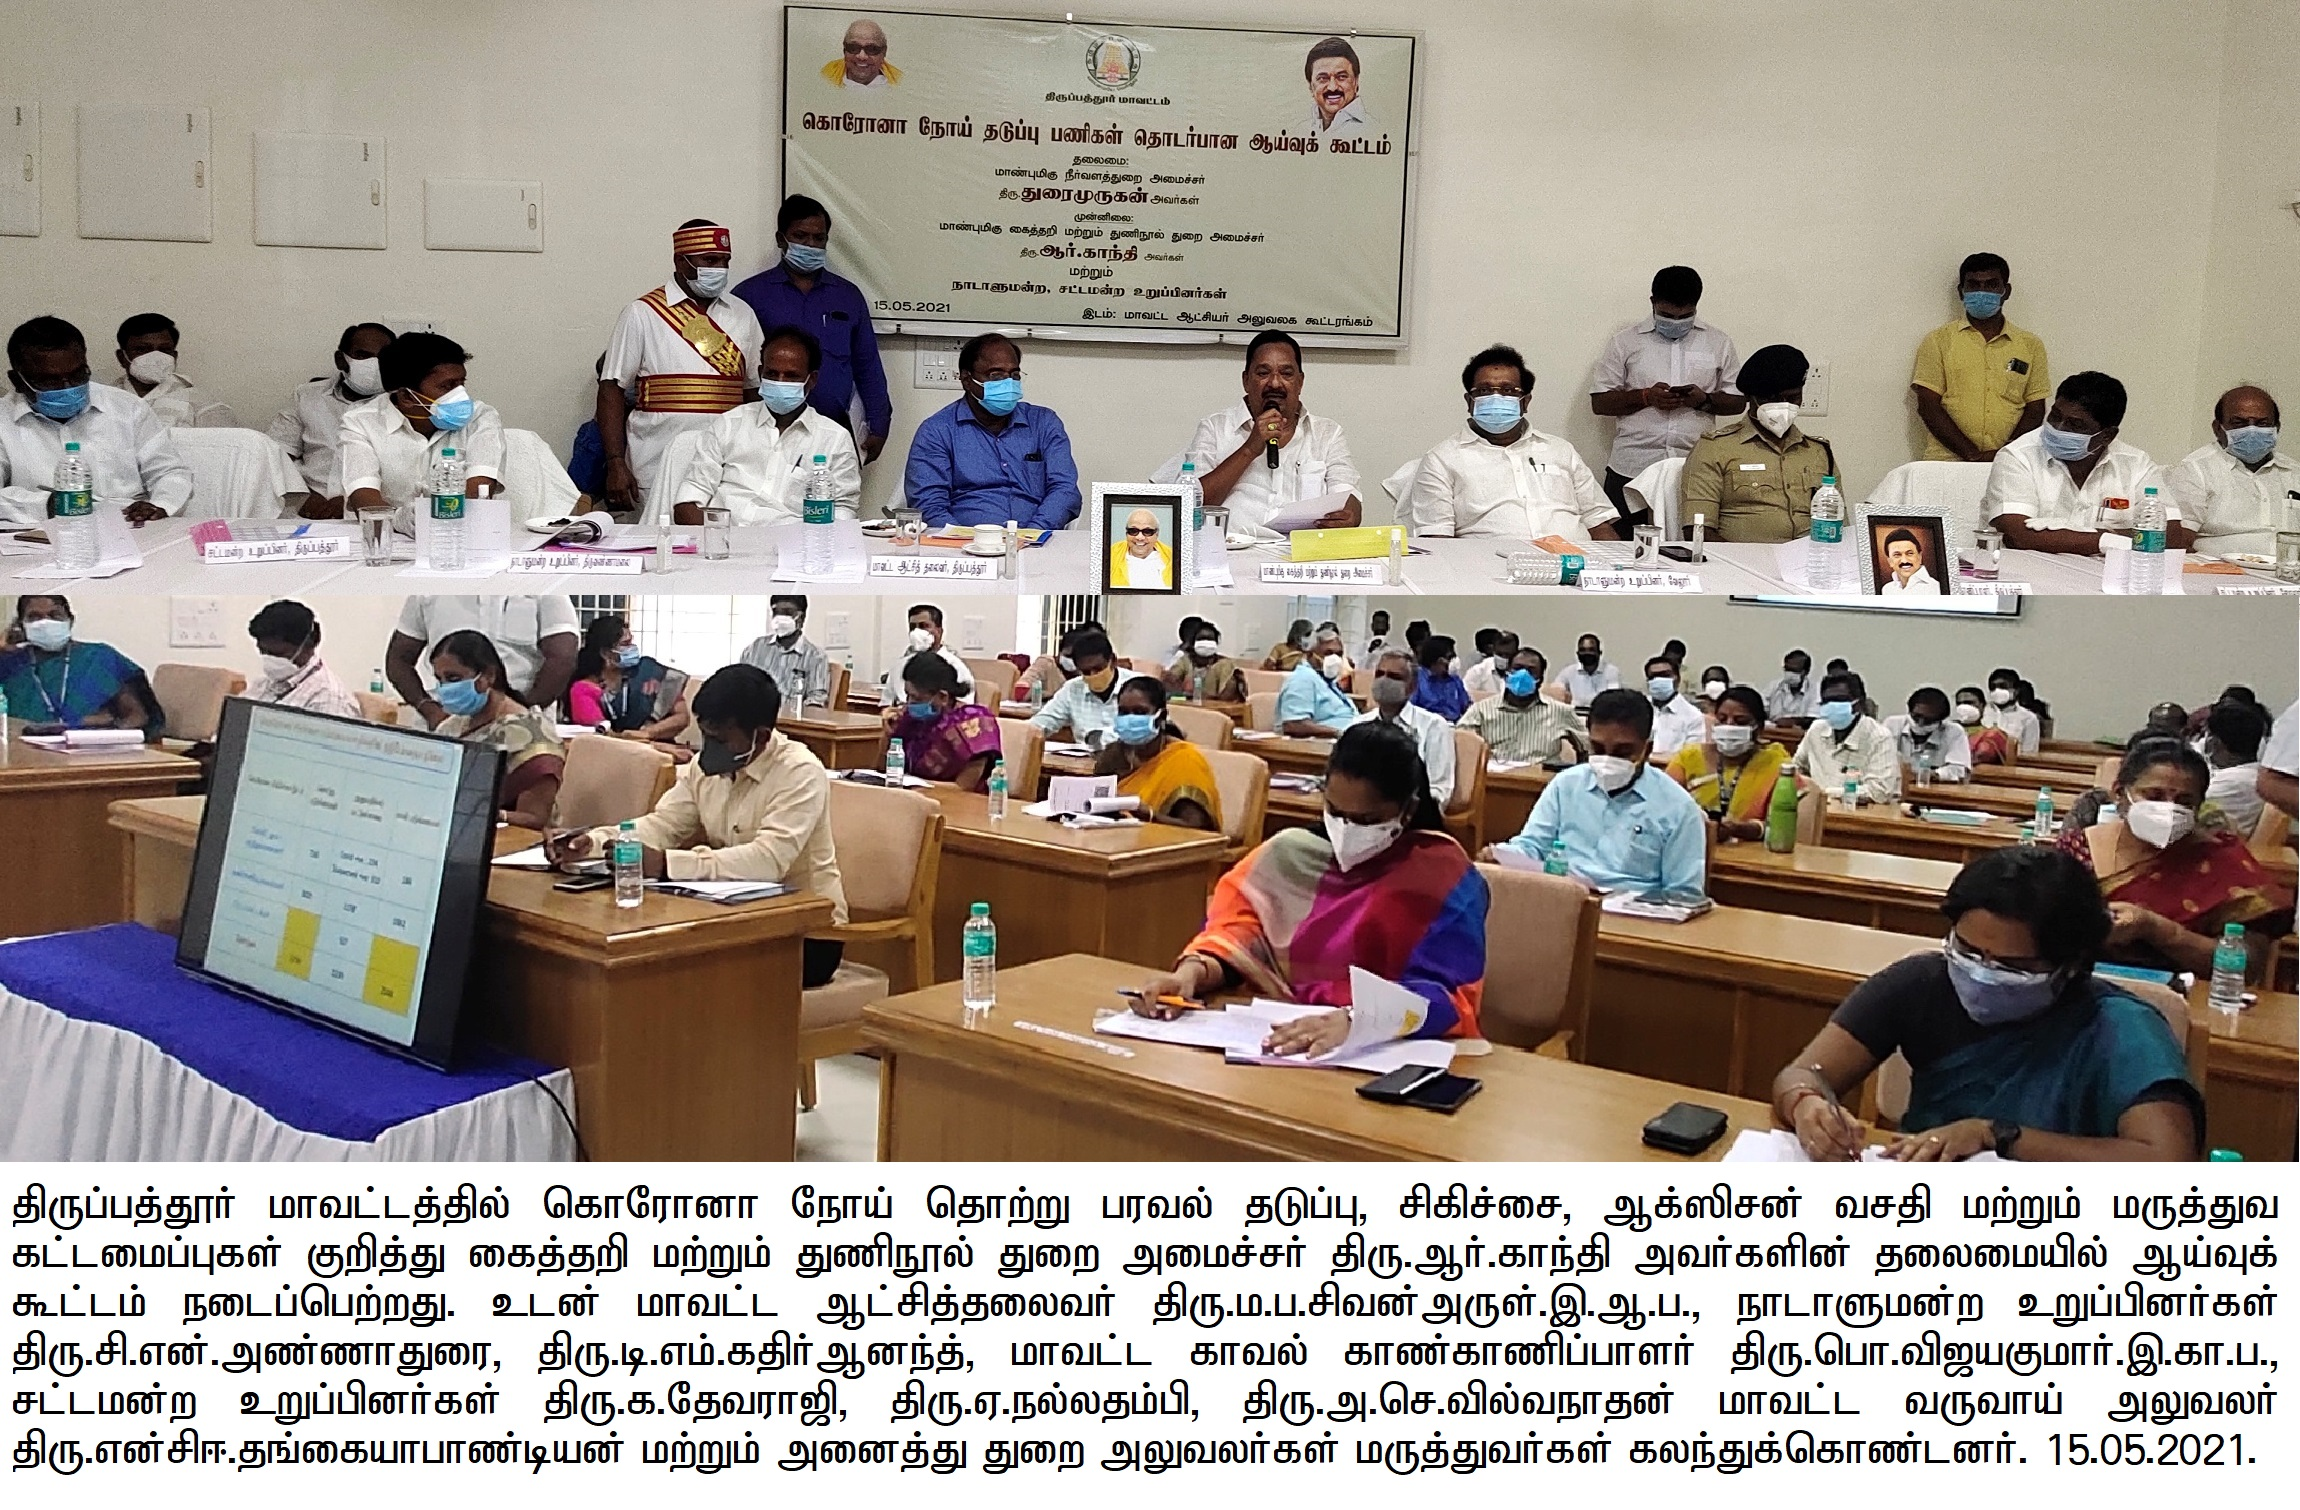 Hon'ble Handloom and Textile minister covid 19 review meeting 15/05/2021